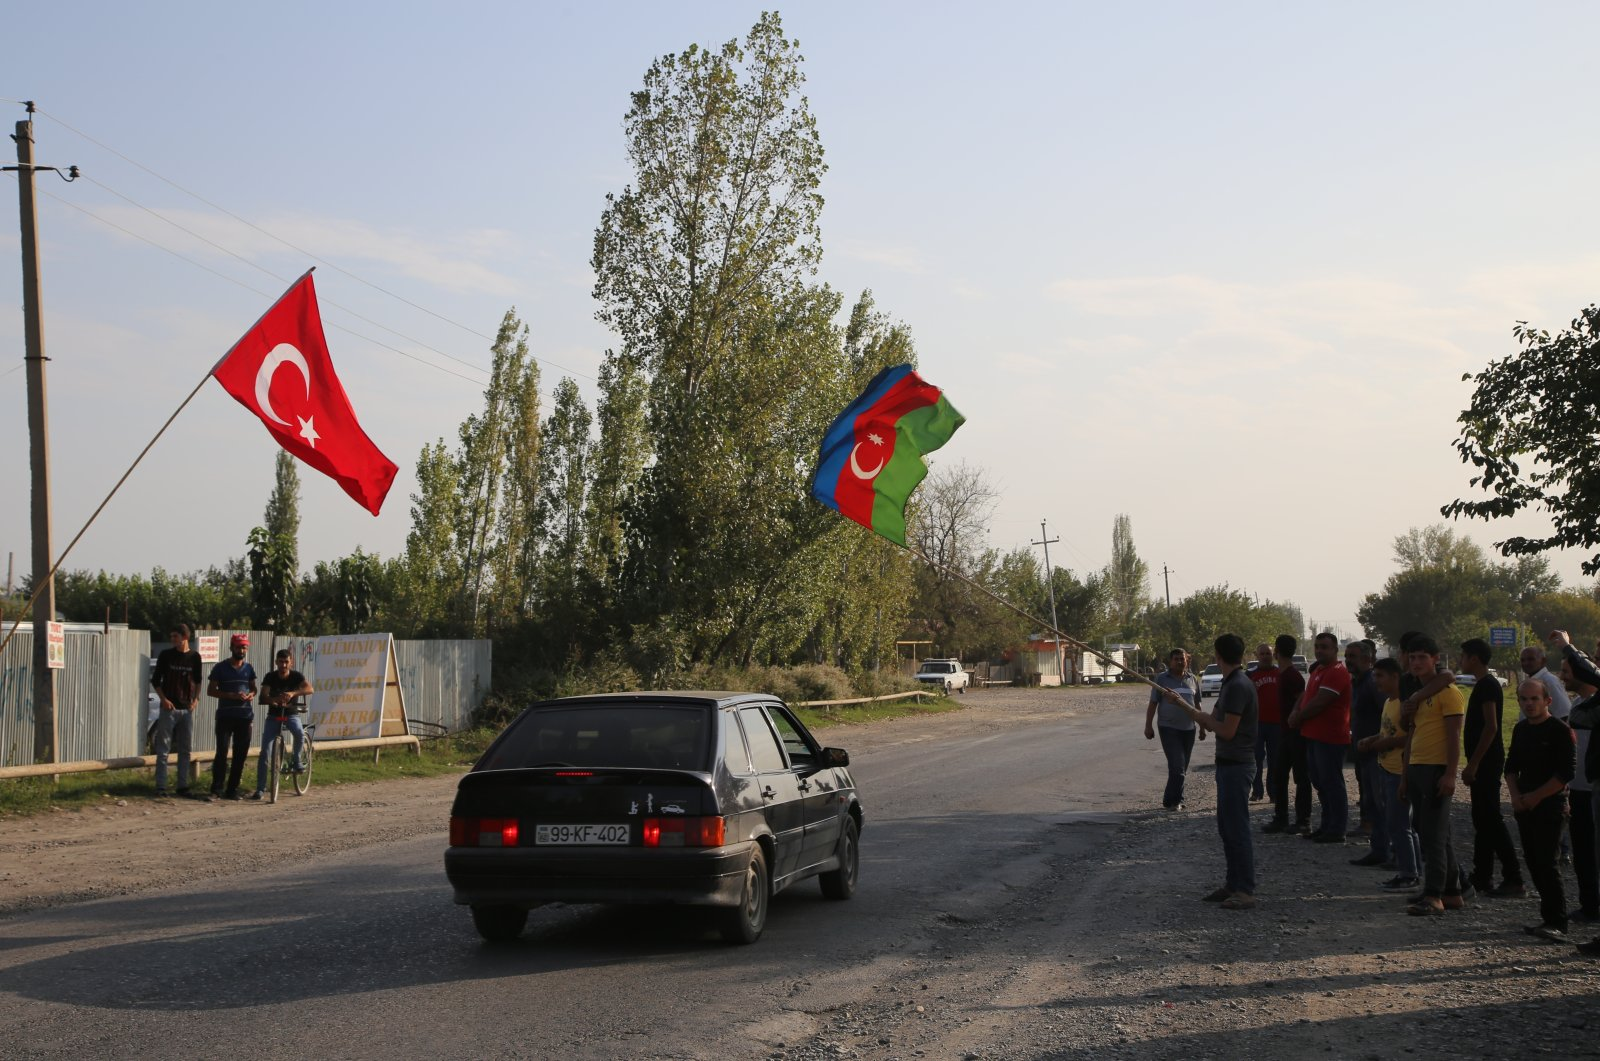 Villagers wave Turkish and Azerbaijani flags at a village in western Azerbaijan as clashes resume in the Armenian-occupied Nagorno-Karabakh region, on Sep. 27, 2020. (AA Photo)